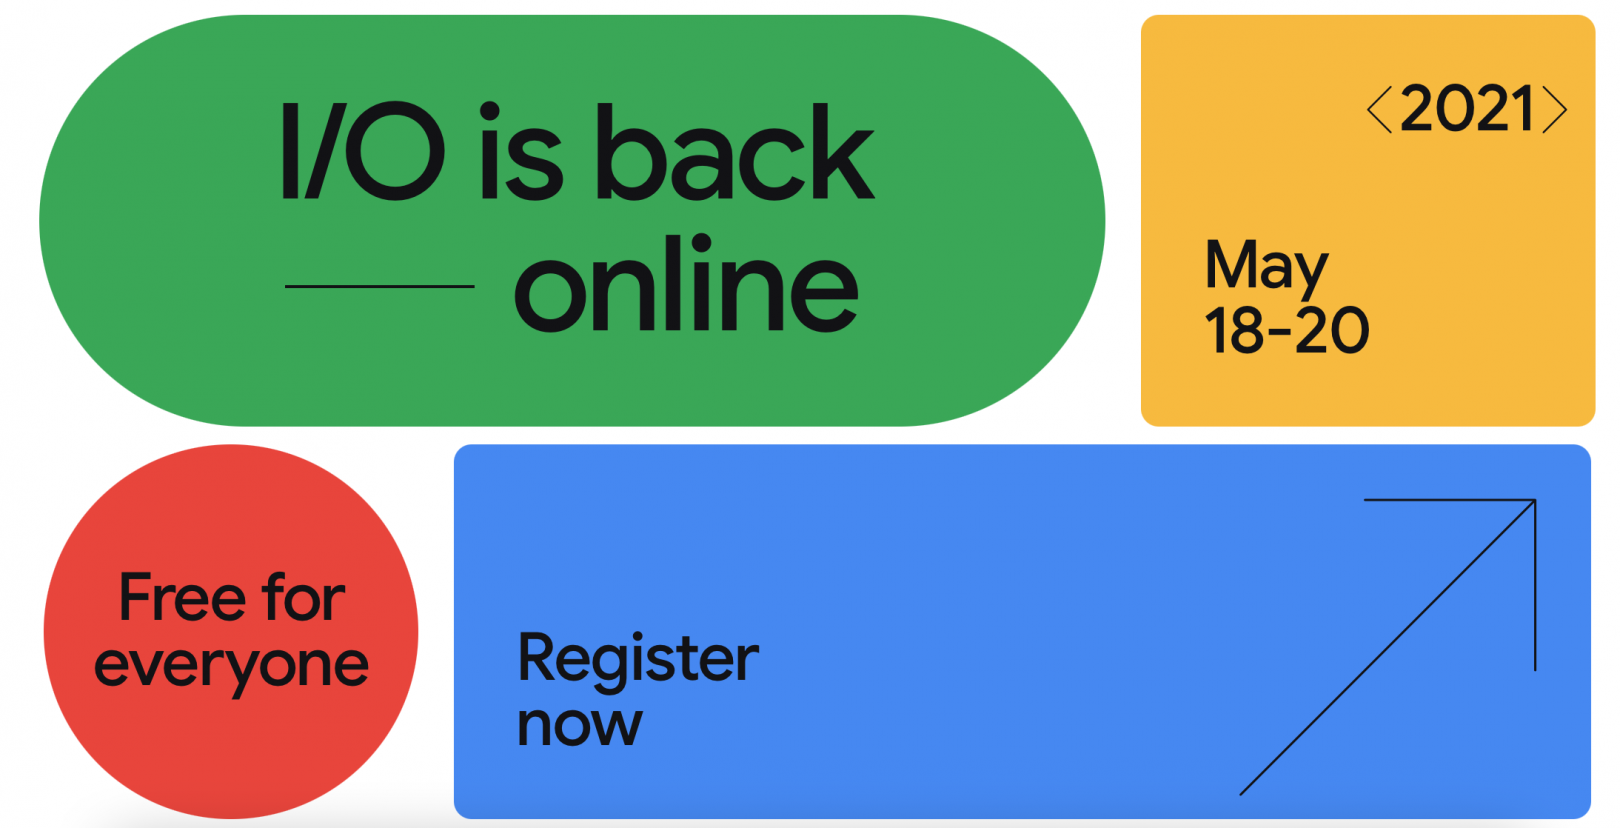 Google I/O 2021 dates confirmed – Android 12, Pixel 5a and more expected